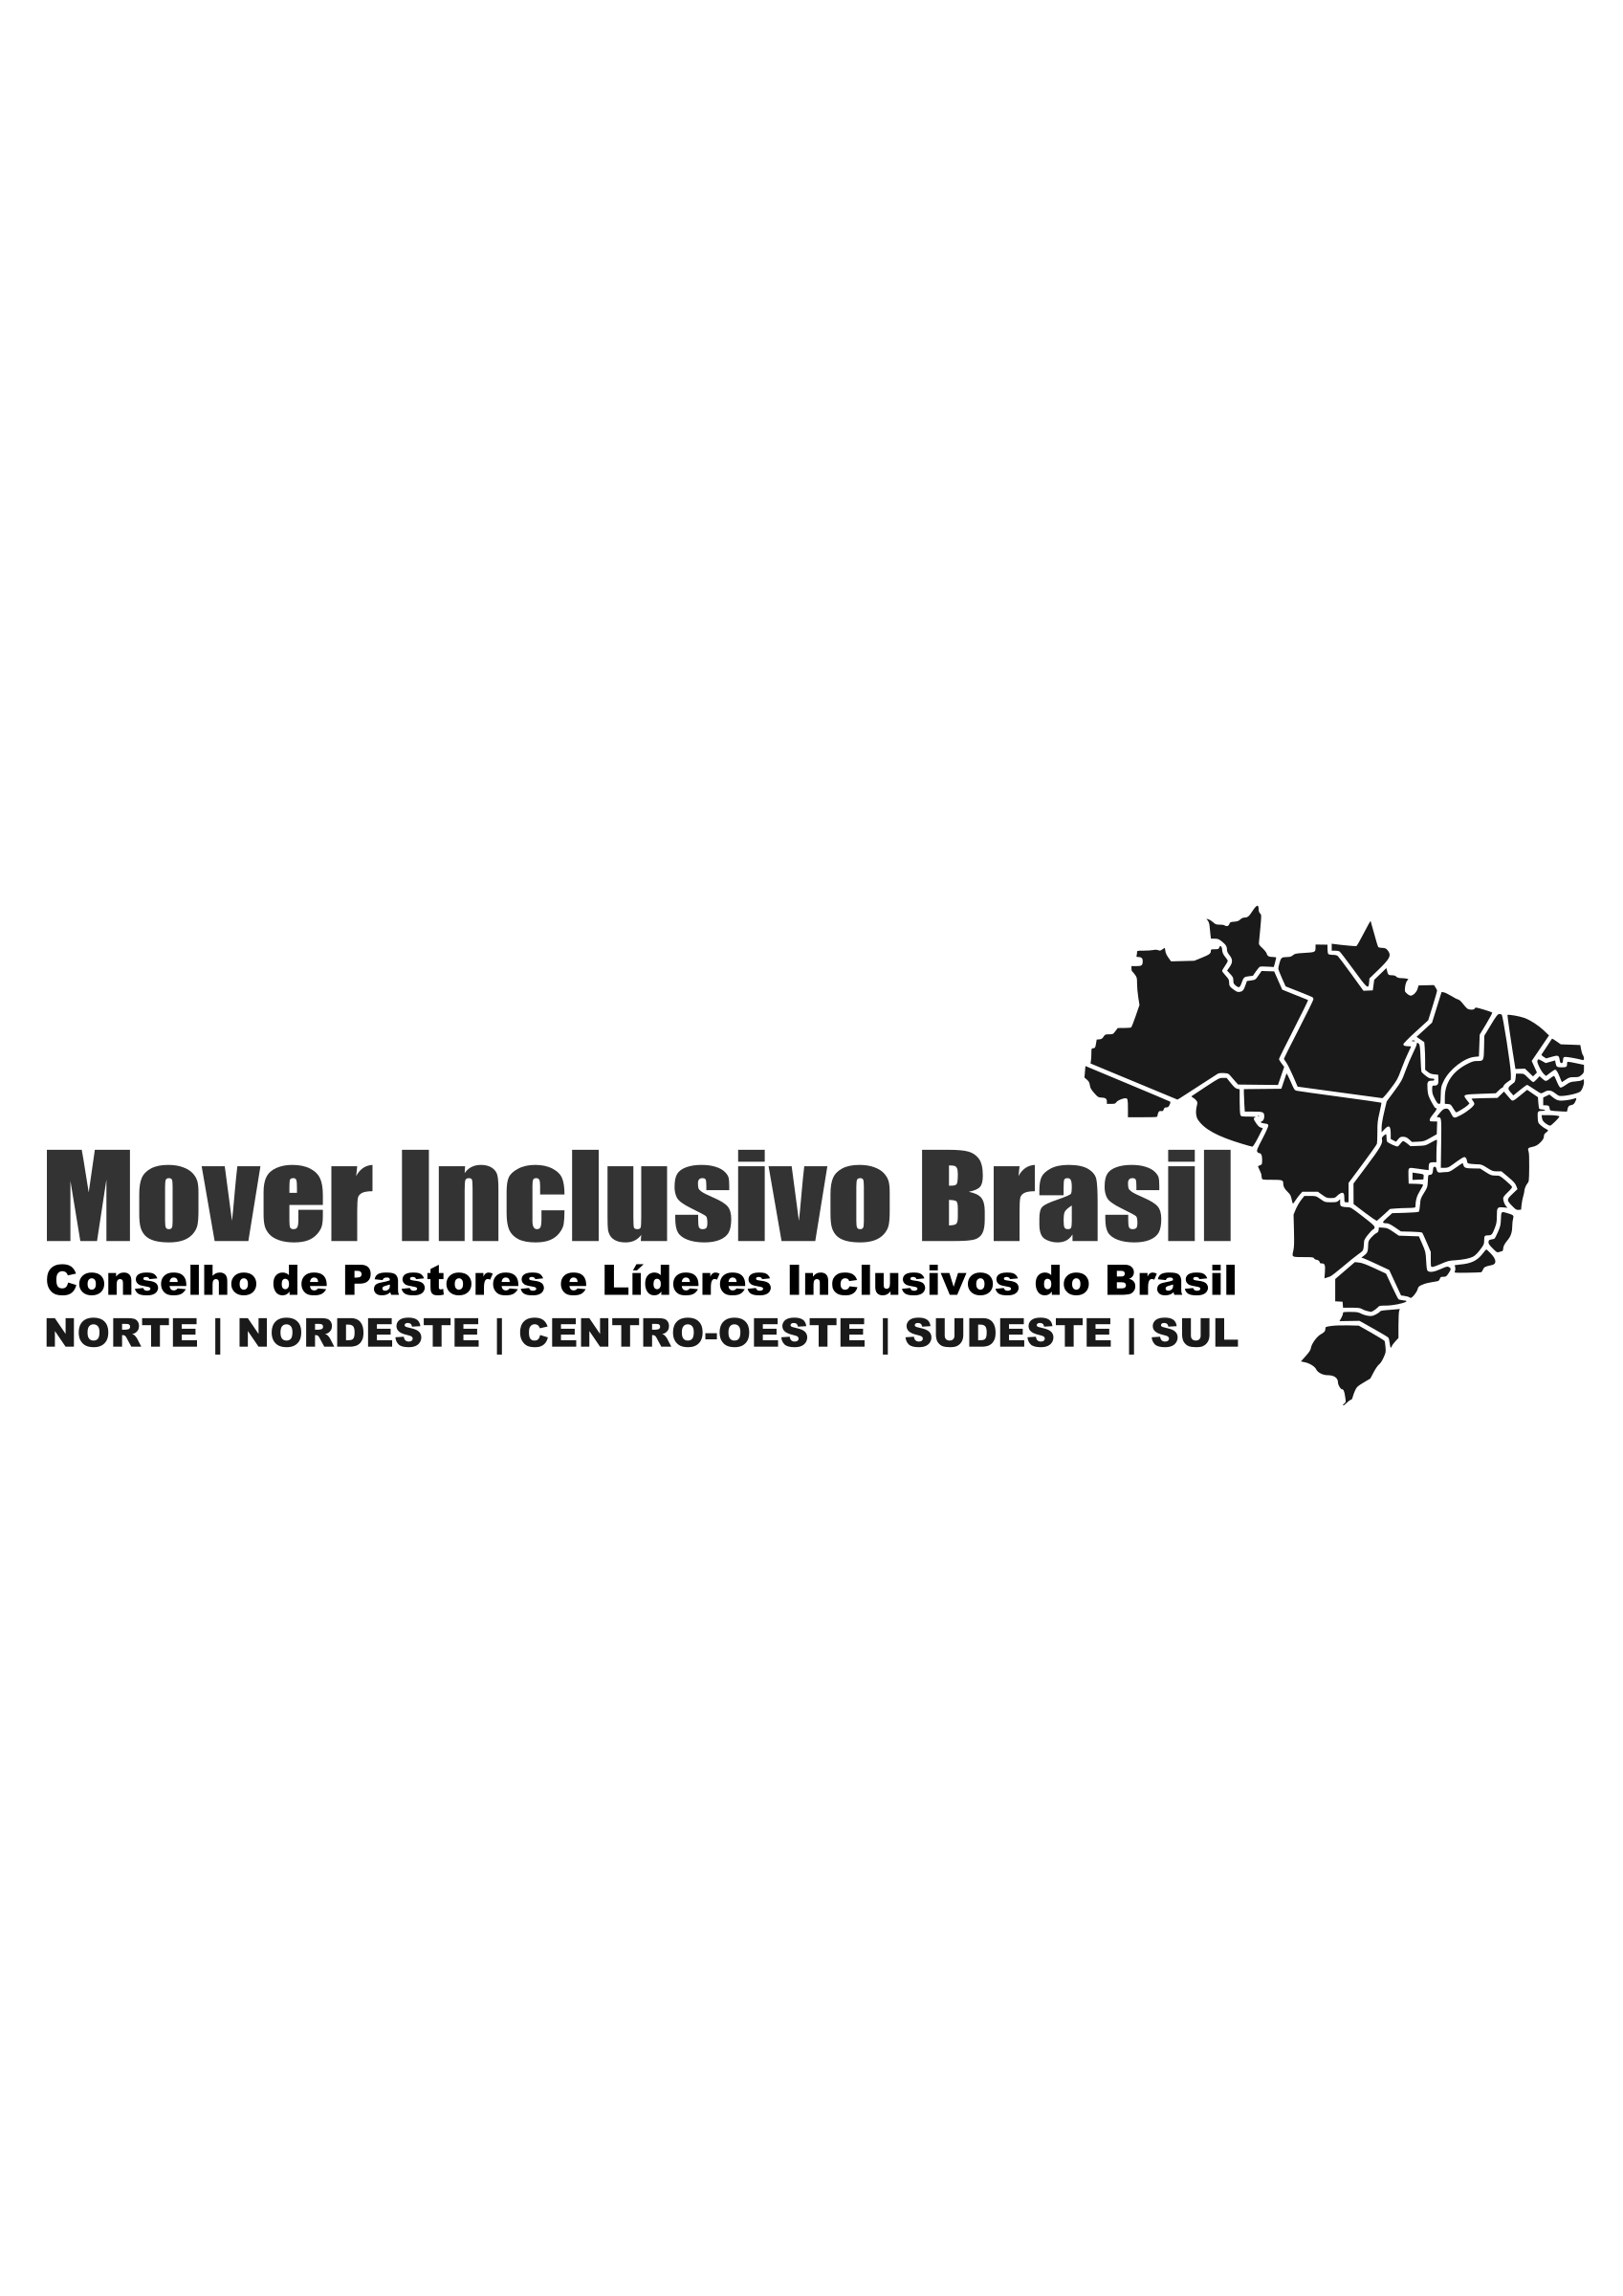 Logo MOVER INCLUSIVO BRASIL by jean charles machado